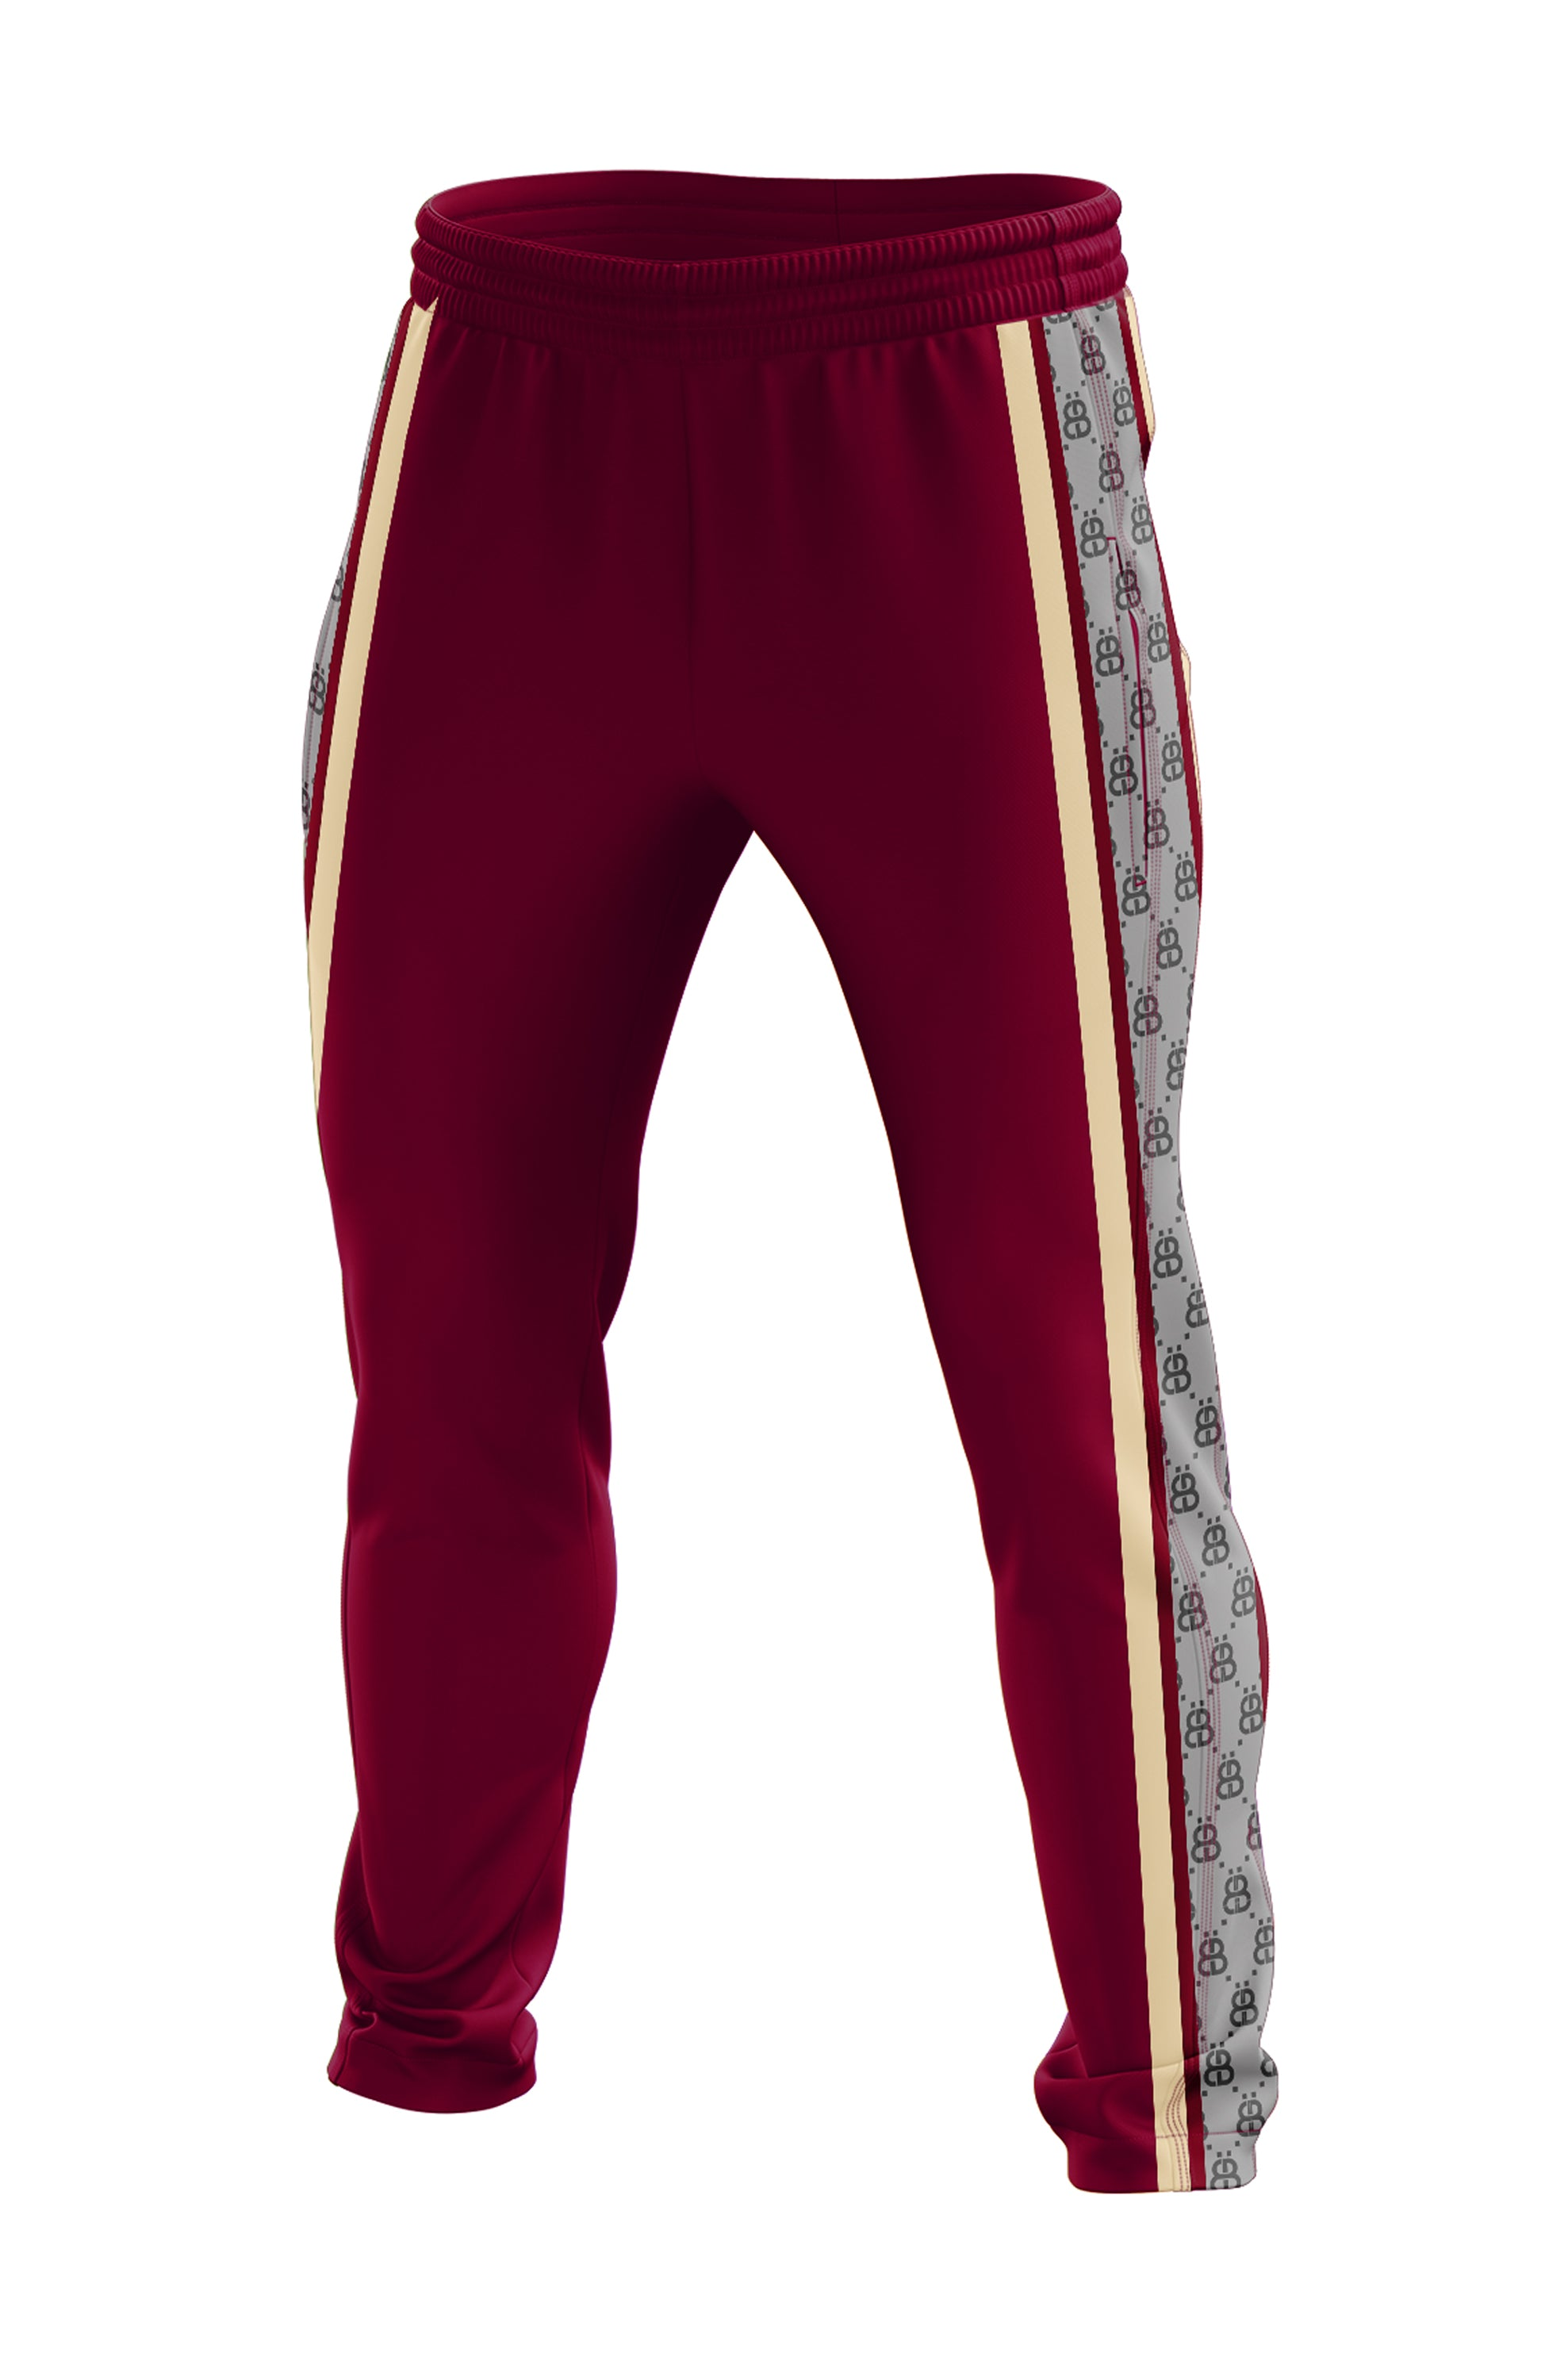 THE MONOGRAM TRACK PANTS- BURGUNDY